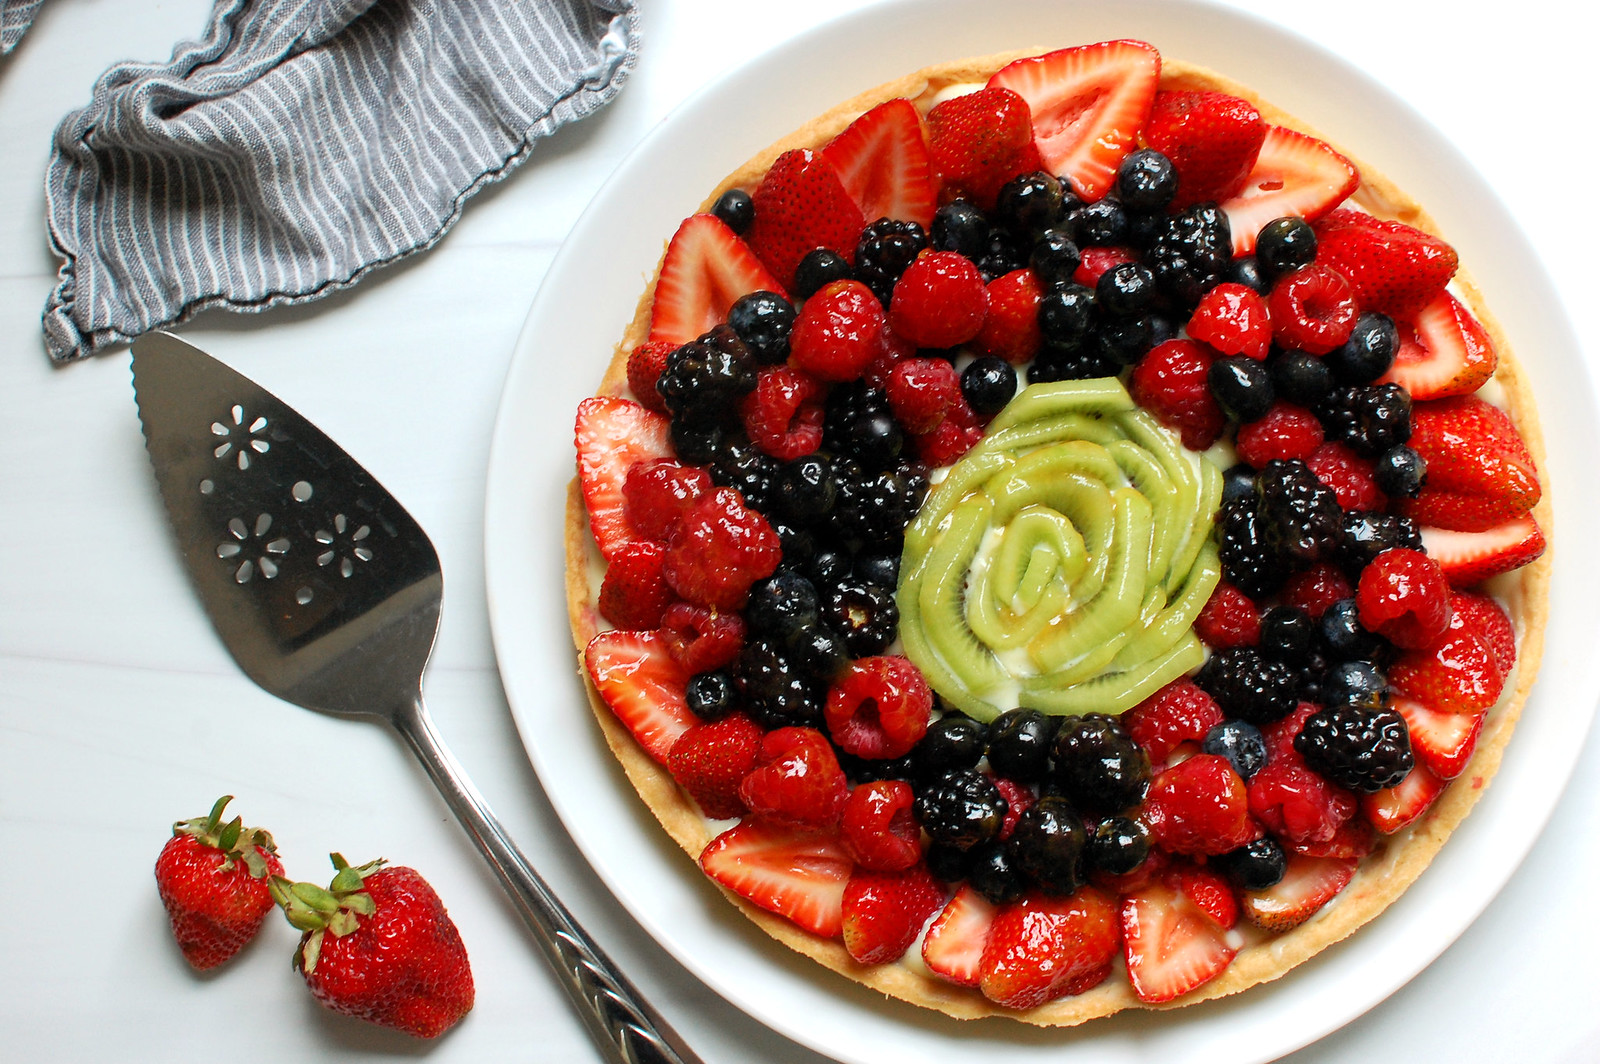 Classic French Fruit Tart Recipe With Pastry Cream - Unpeeled Journal Journal